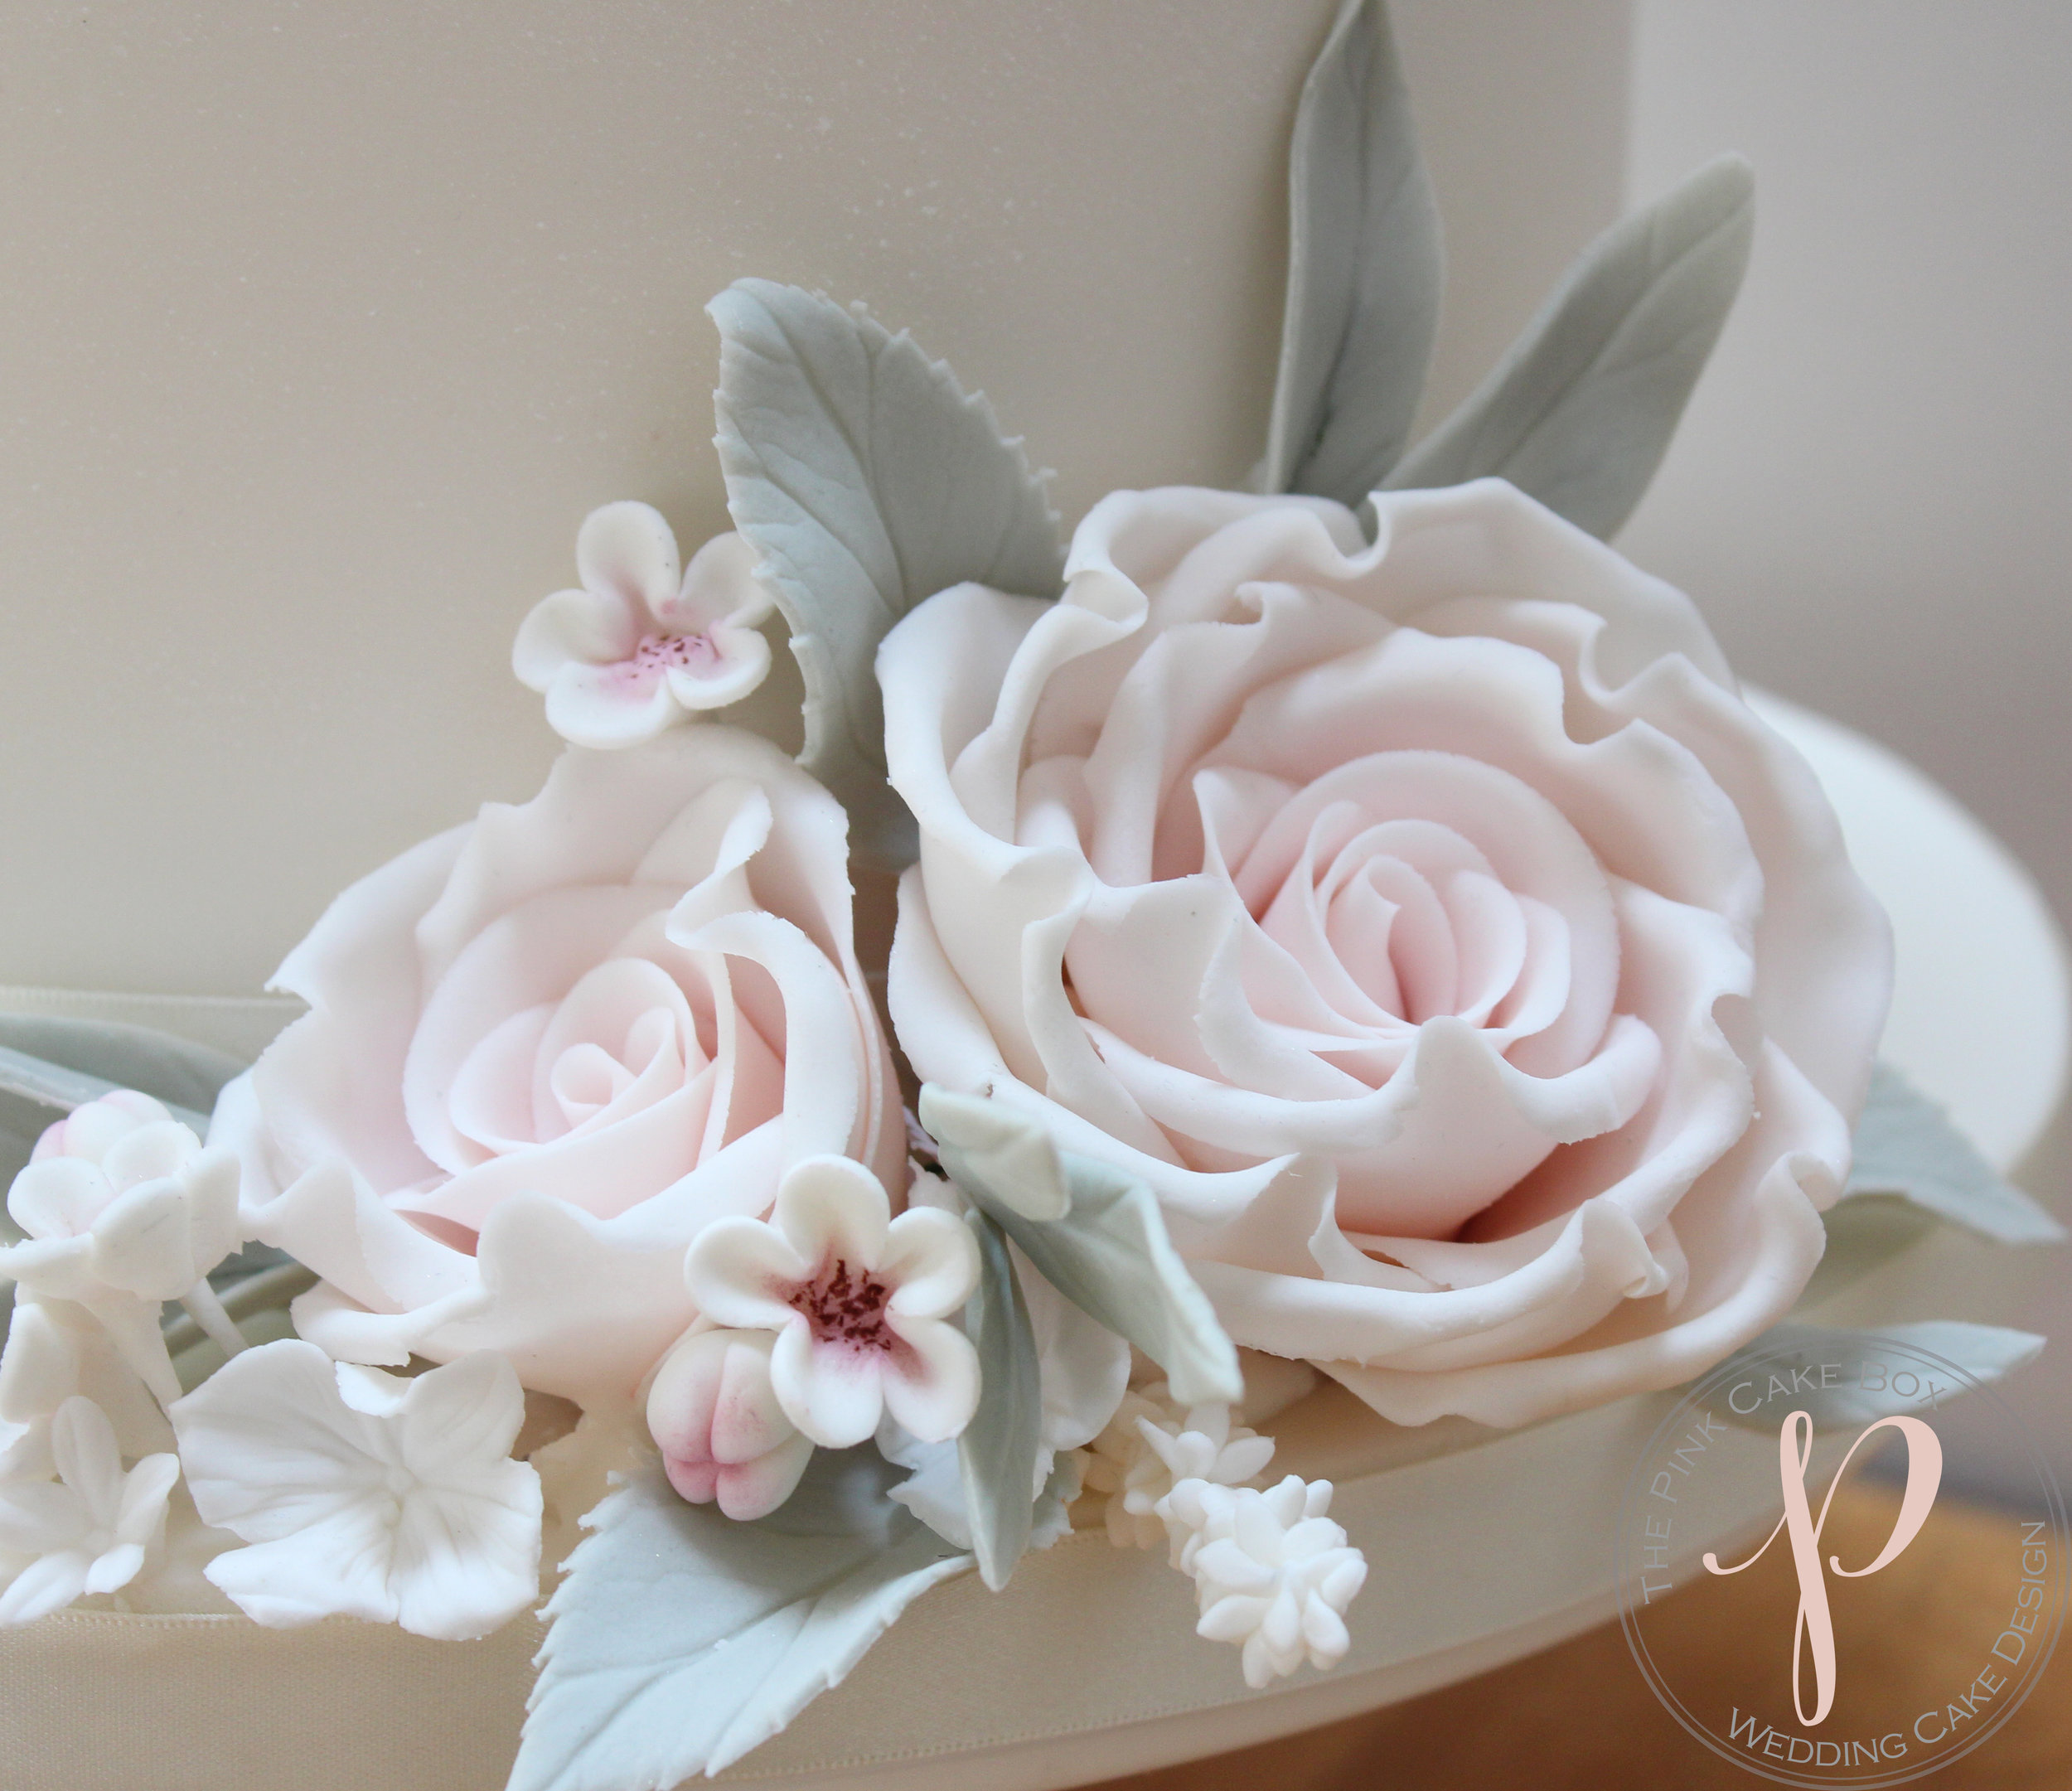 blush sugar rose wedding cake.jpg